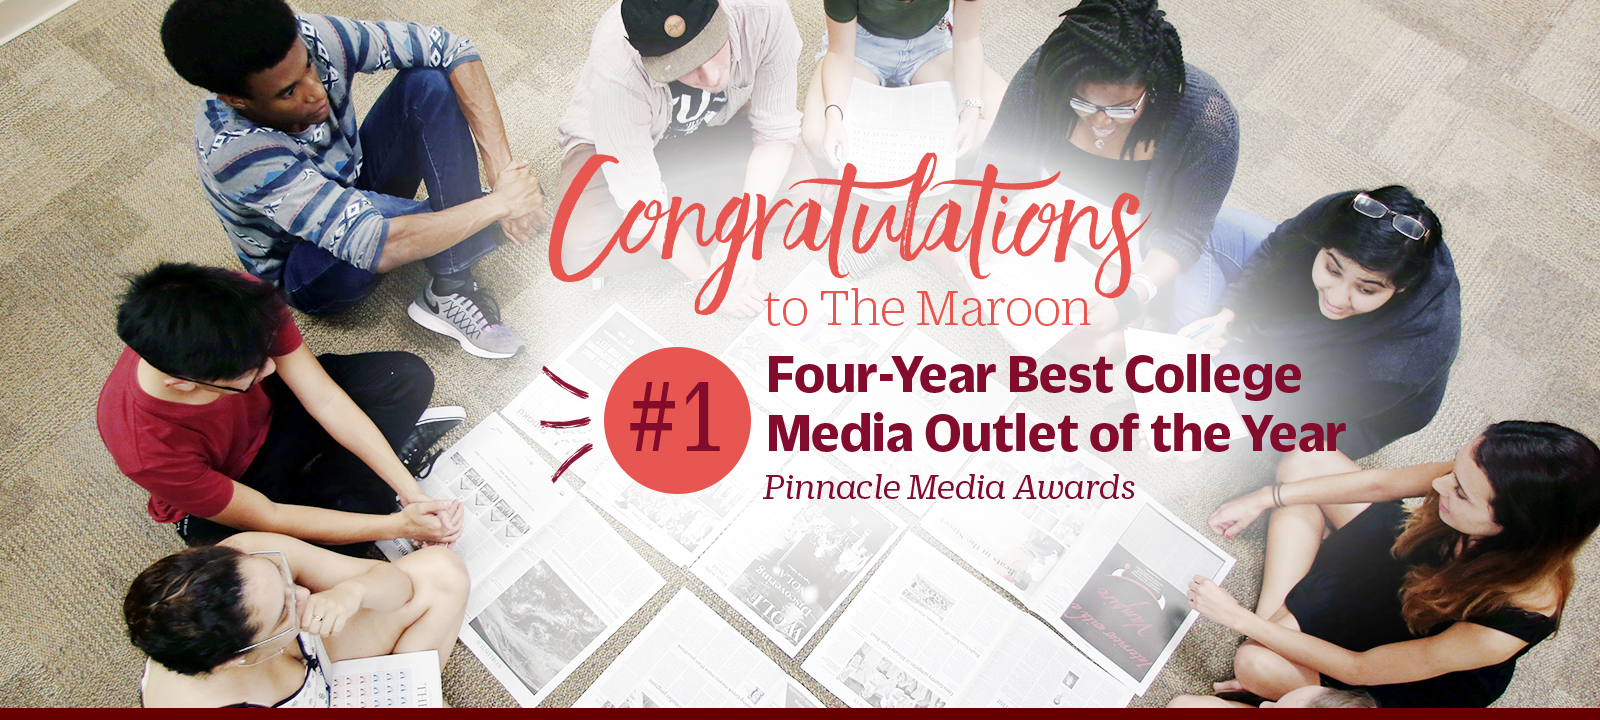 Loyola newspaper wins Best College News Outlet of the Year! Learn more